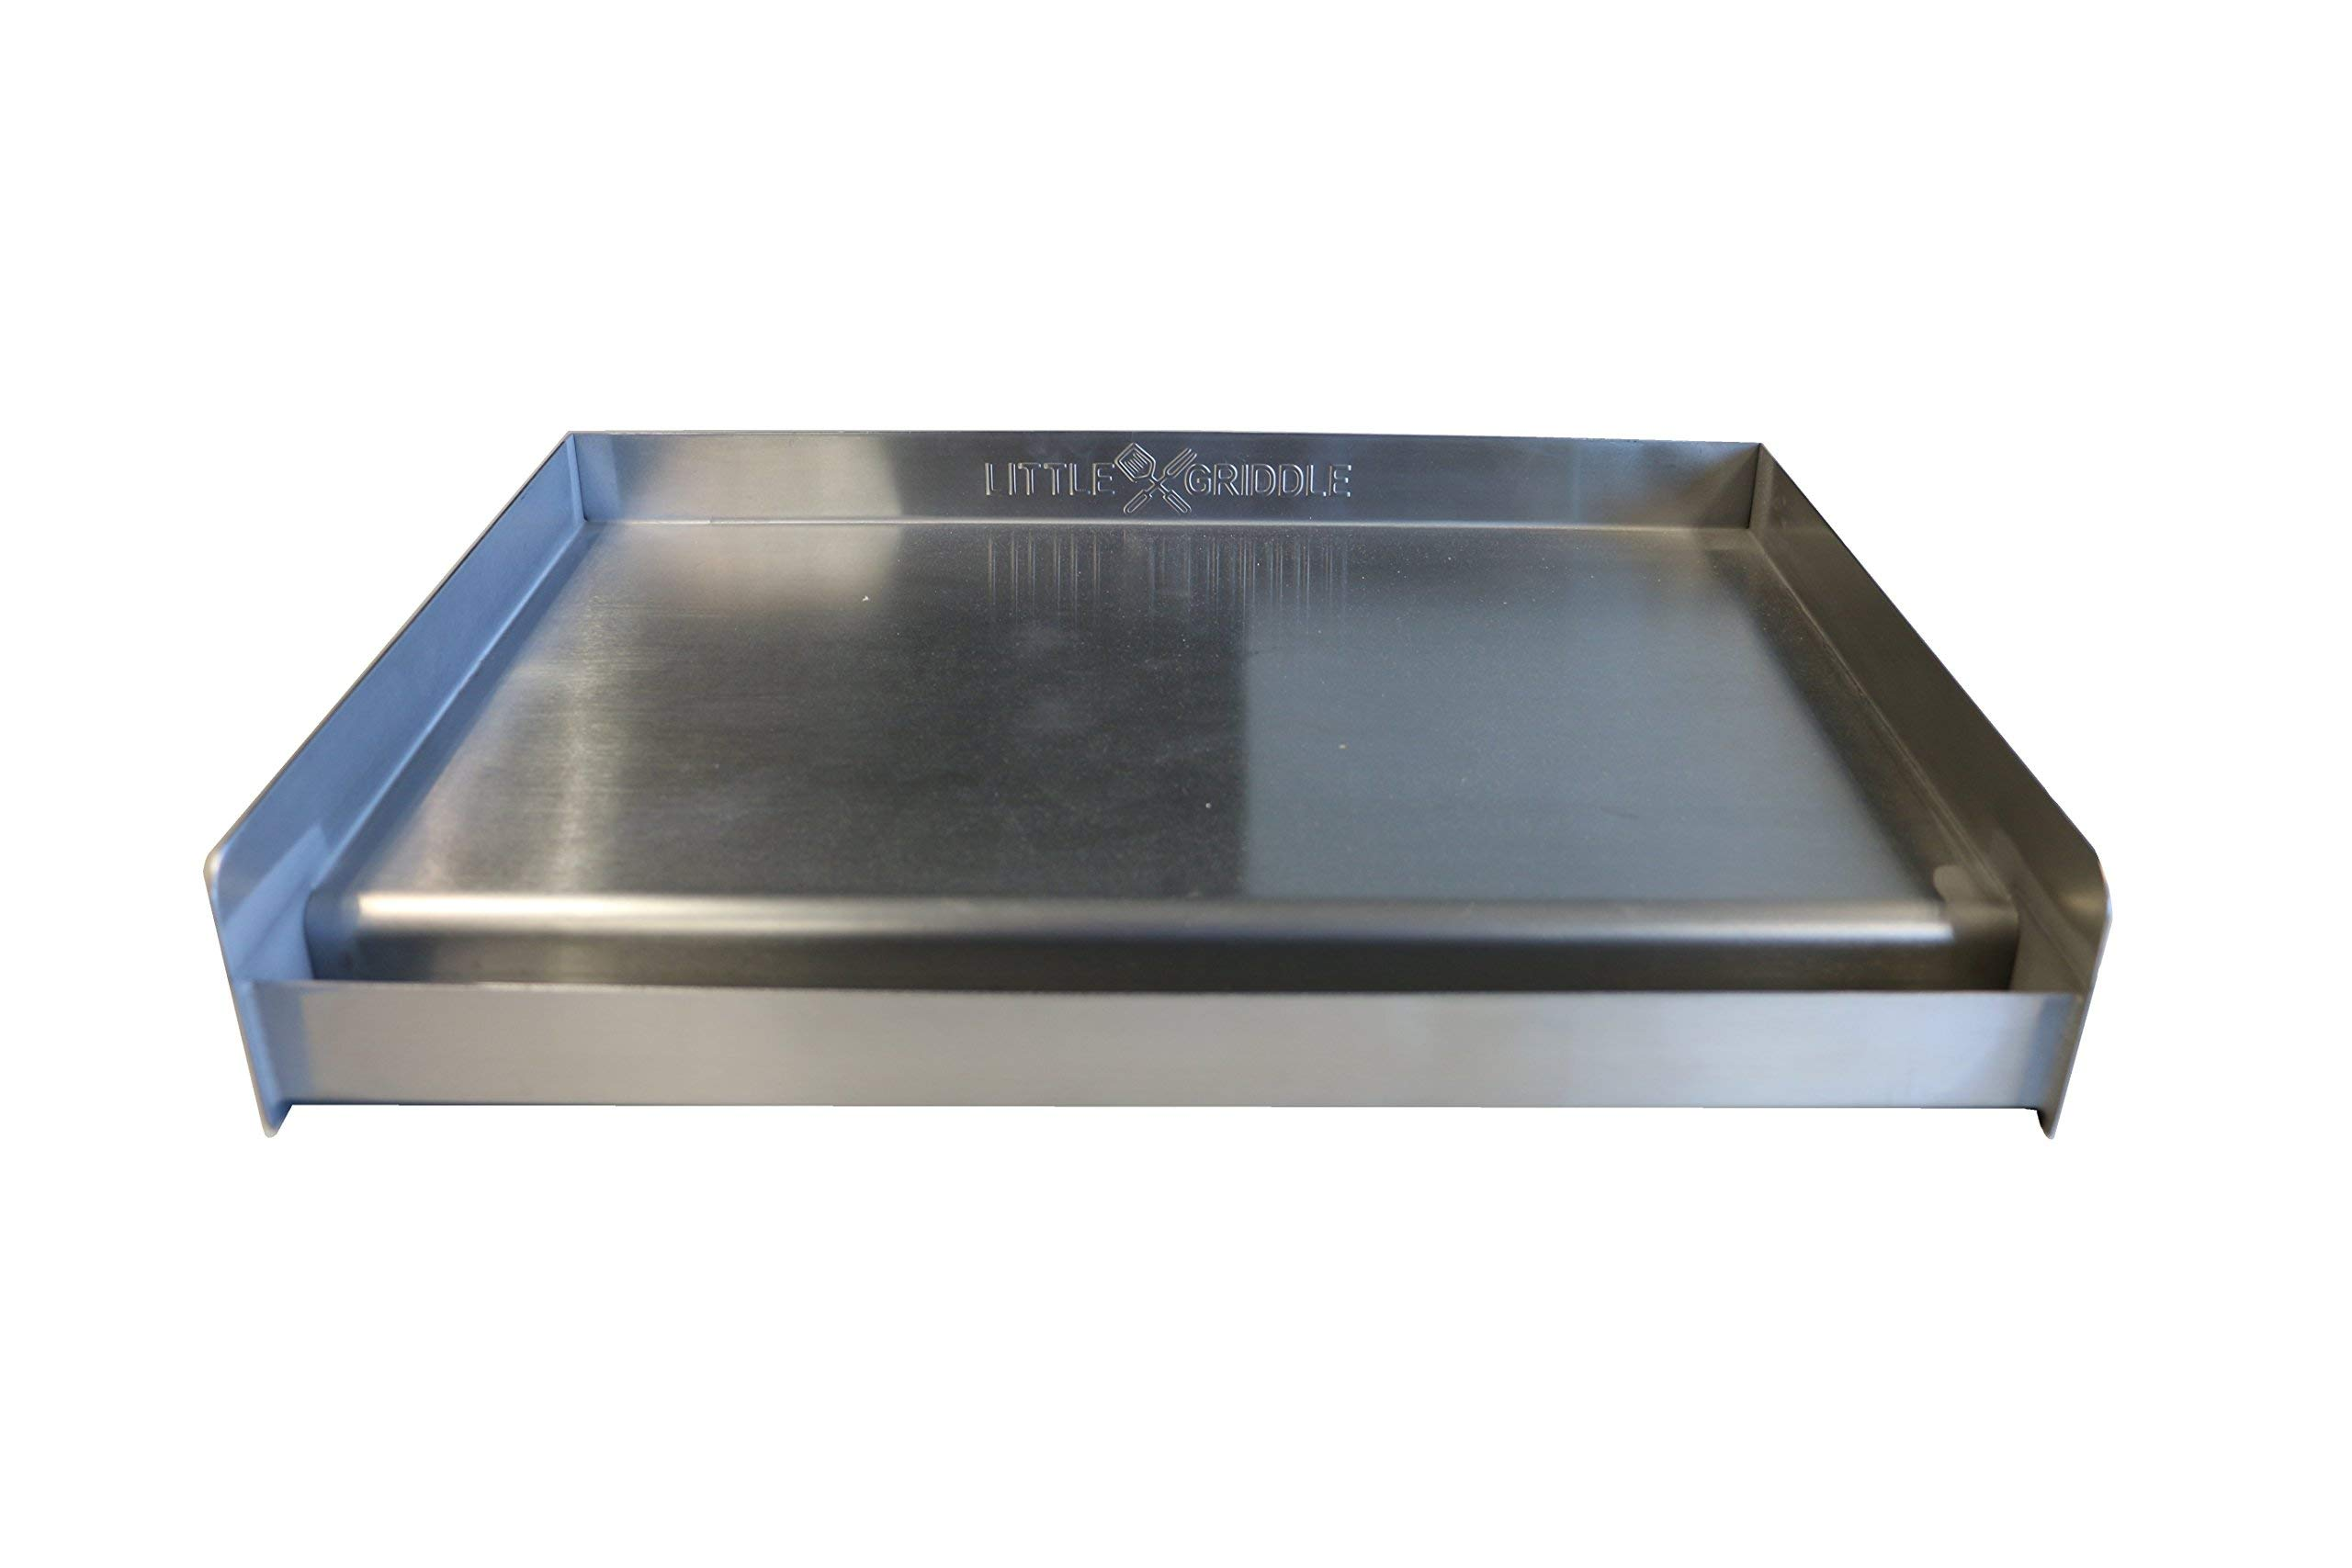 Little Griddle SQ180 100% Stainless Steel Universal Griddle with Even Heating Cross Bracing for Charcoal/Gas Grills, Camping, Tailgating, and Parties (18''x13''x3'') (Renewed)